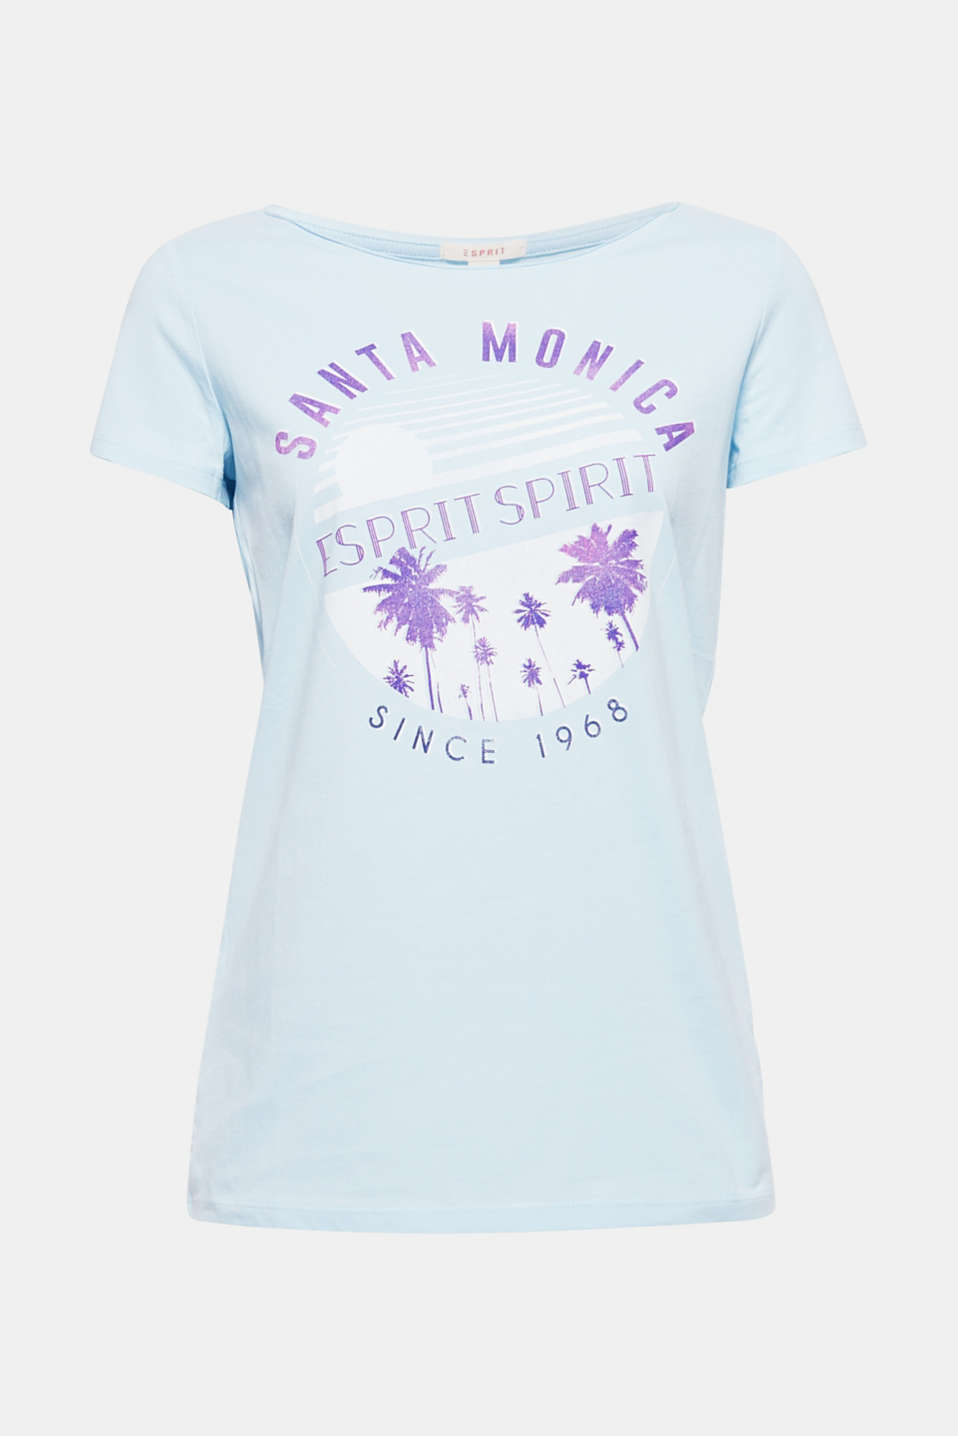 Your ESPRIT spirit! The stunning statement print on the front of this pure cotton T-shirt will make you the centre of attention!